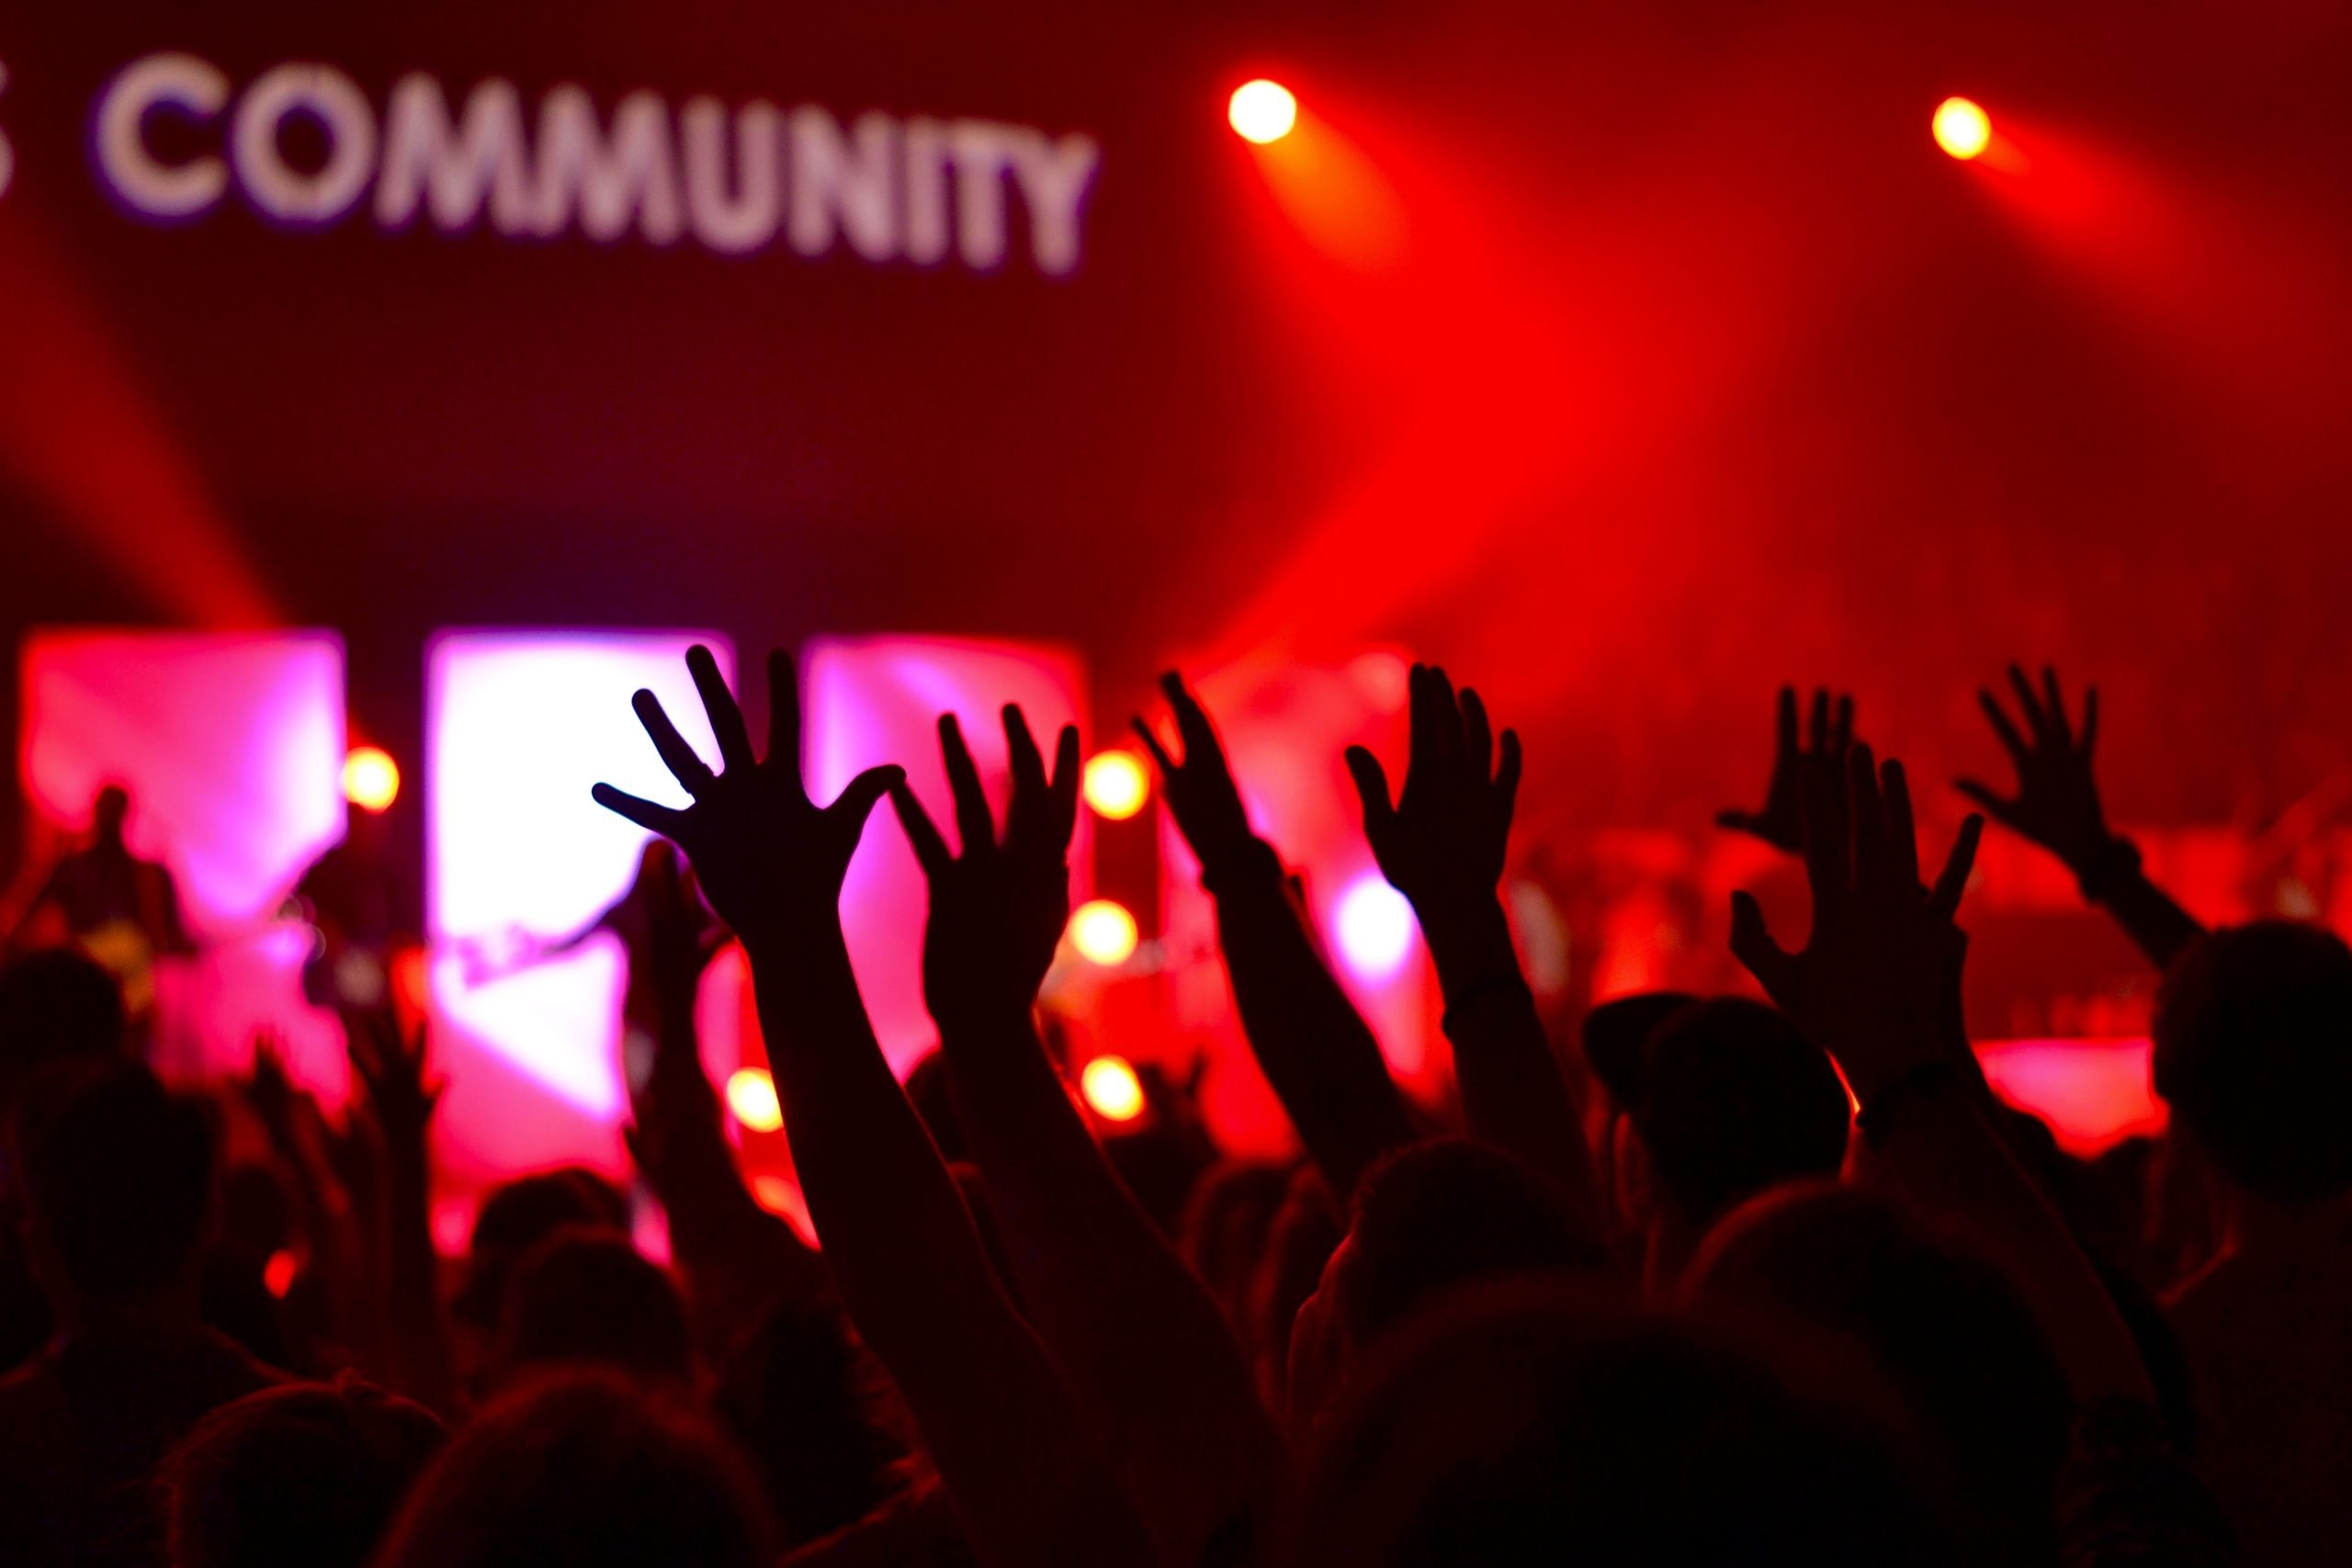 The image shows a nightclub environment with the word community above a bunch of raised hands.